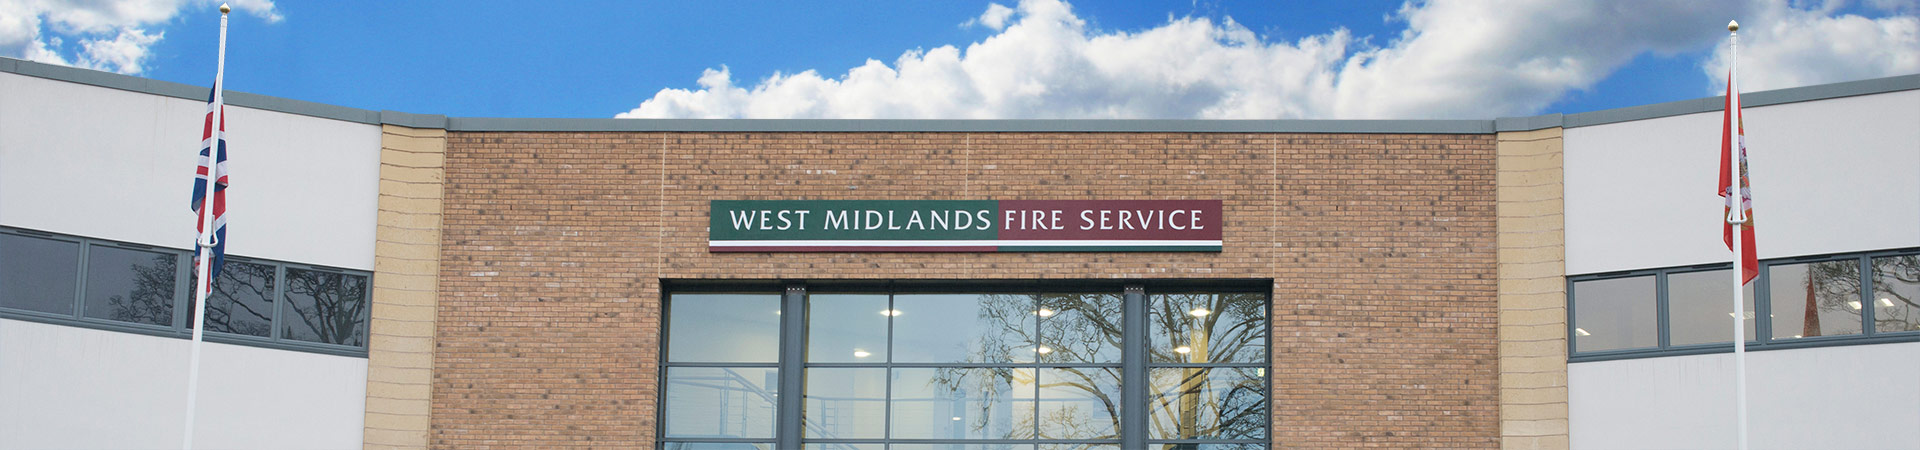 Cradley Heath Fire Station, West Midlands